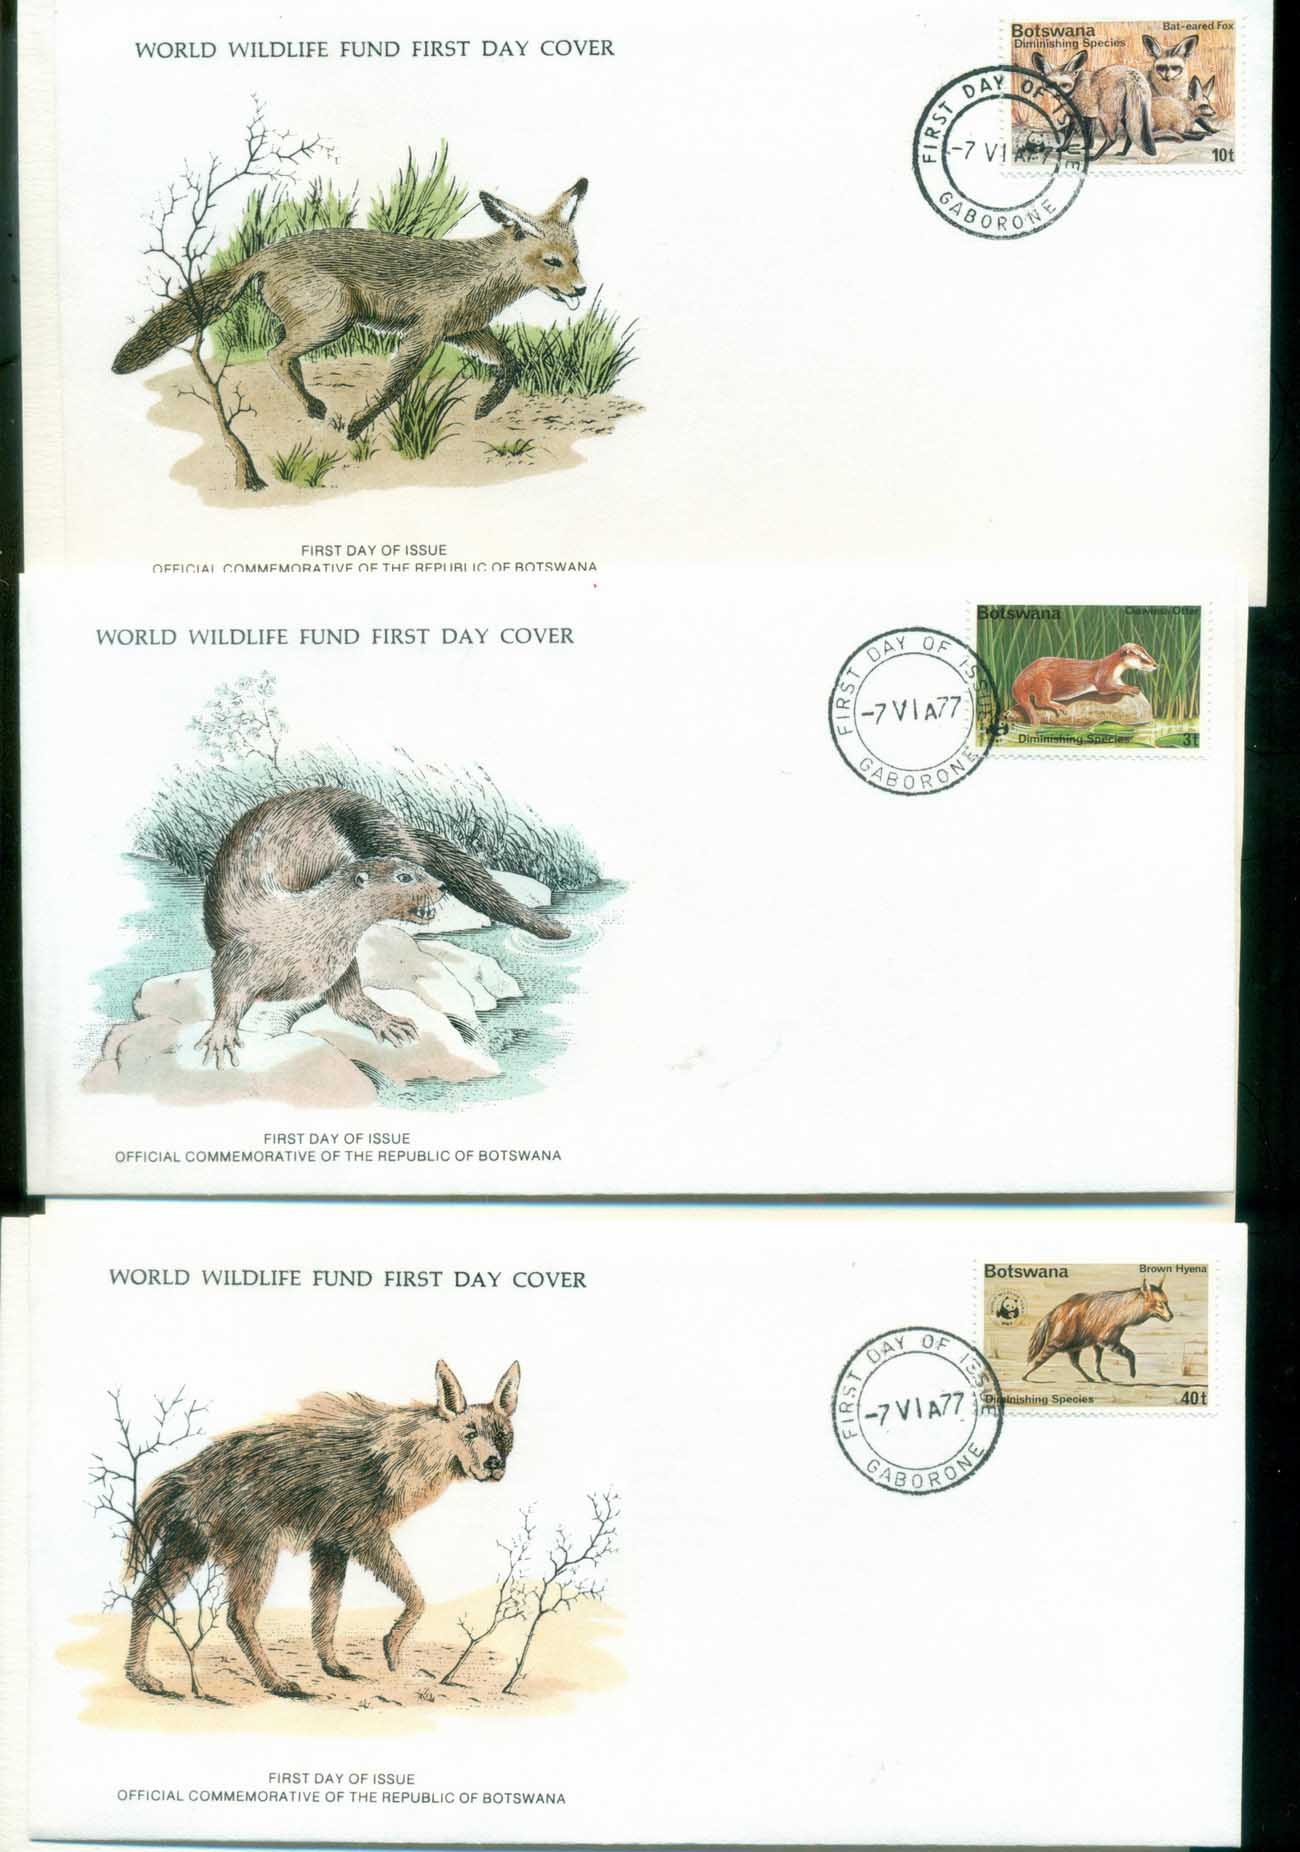 Botswana 1977 WWF,Fox, Otter, Hyena,Franlkin Mint (with inserts) 3xFDC lot79603